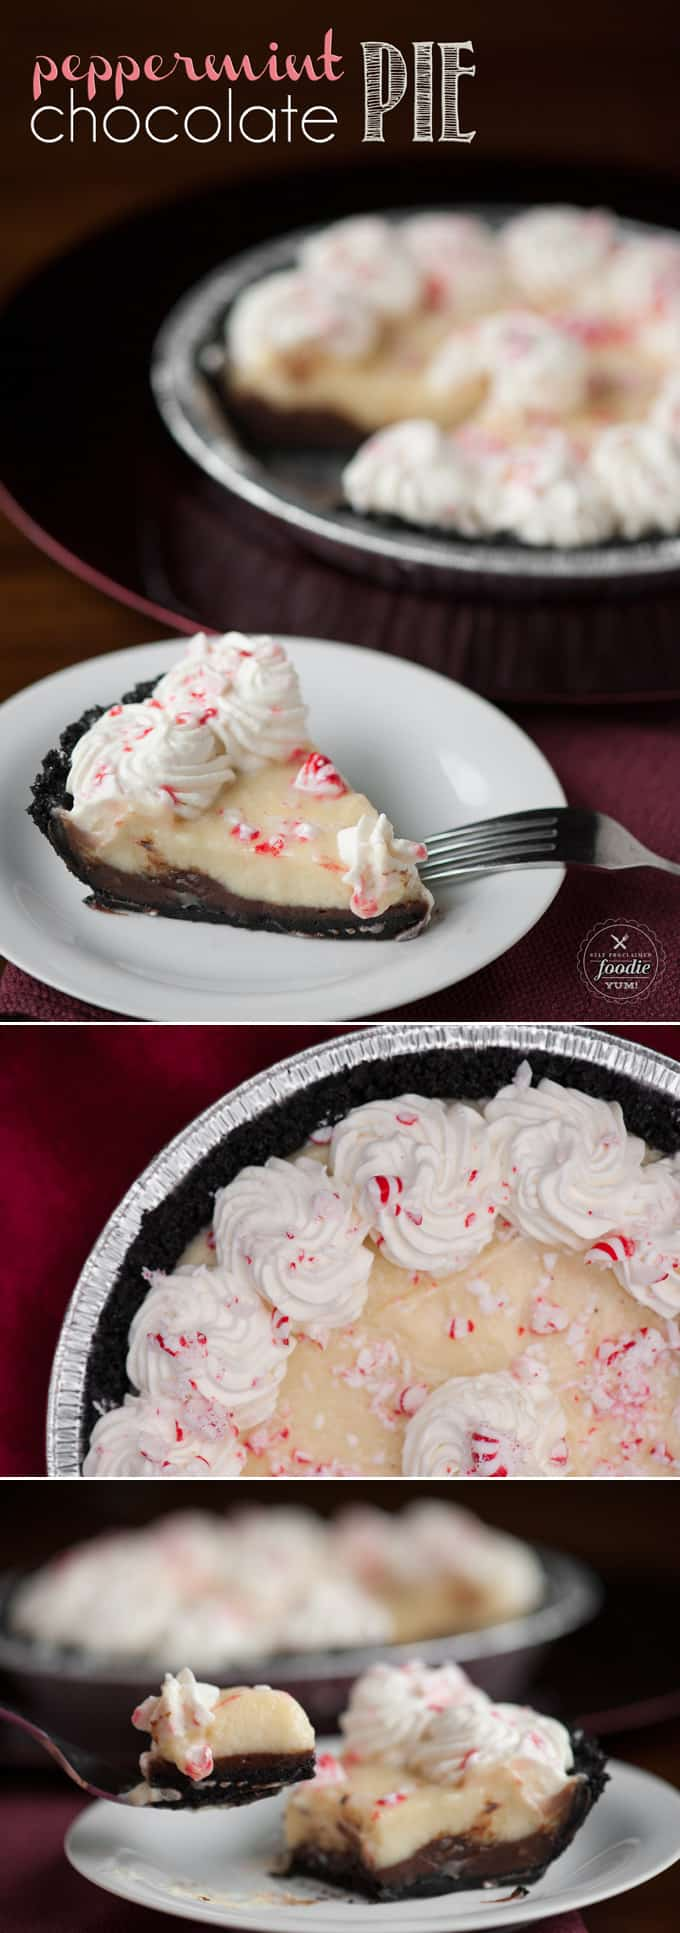 This undeniably delicious and decadent two layer Peppermint Chocolate Pie is the best chilled holiday dessert you will find.